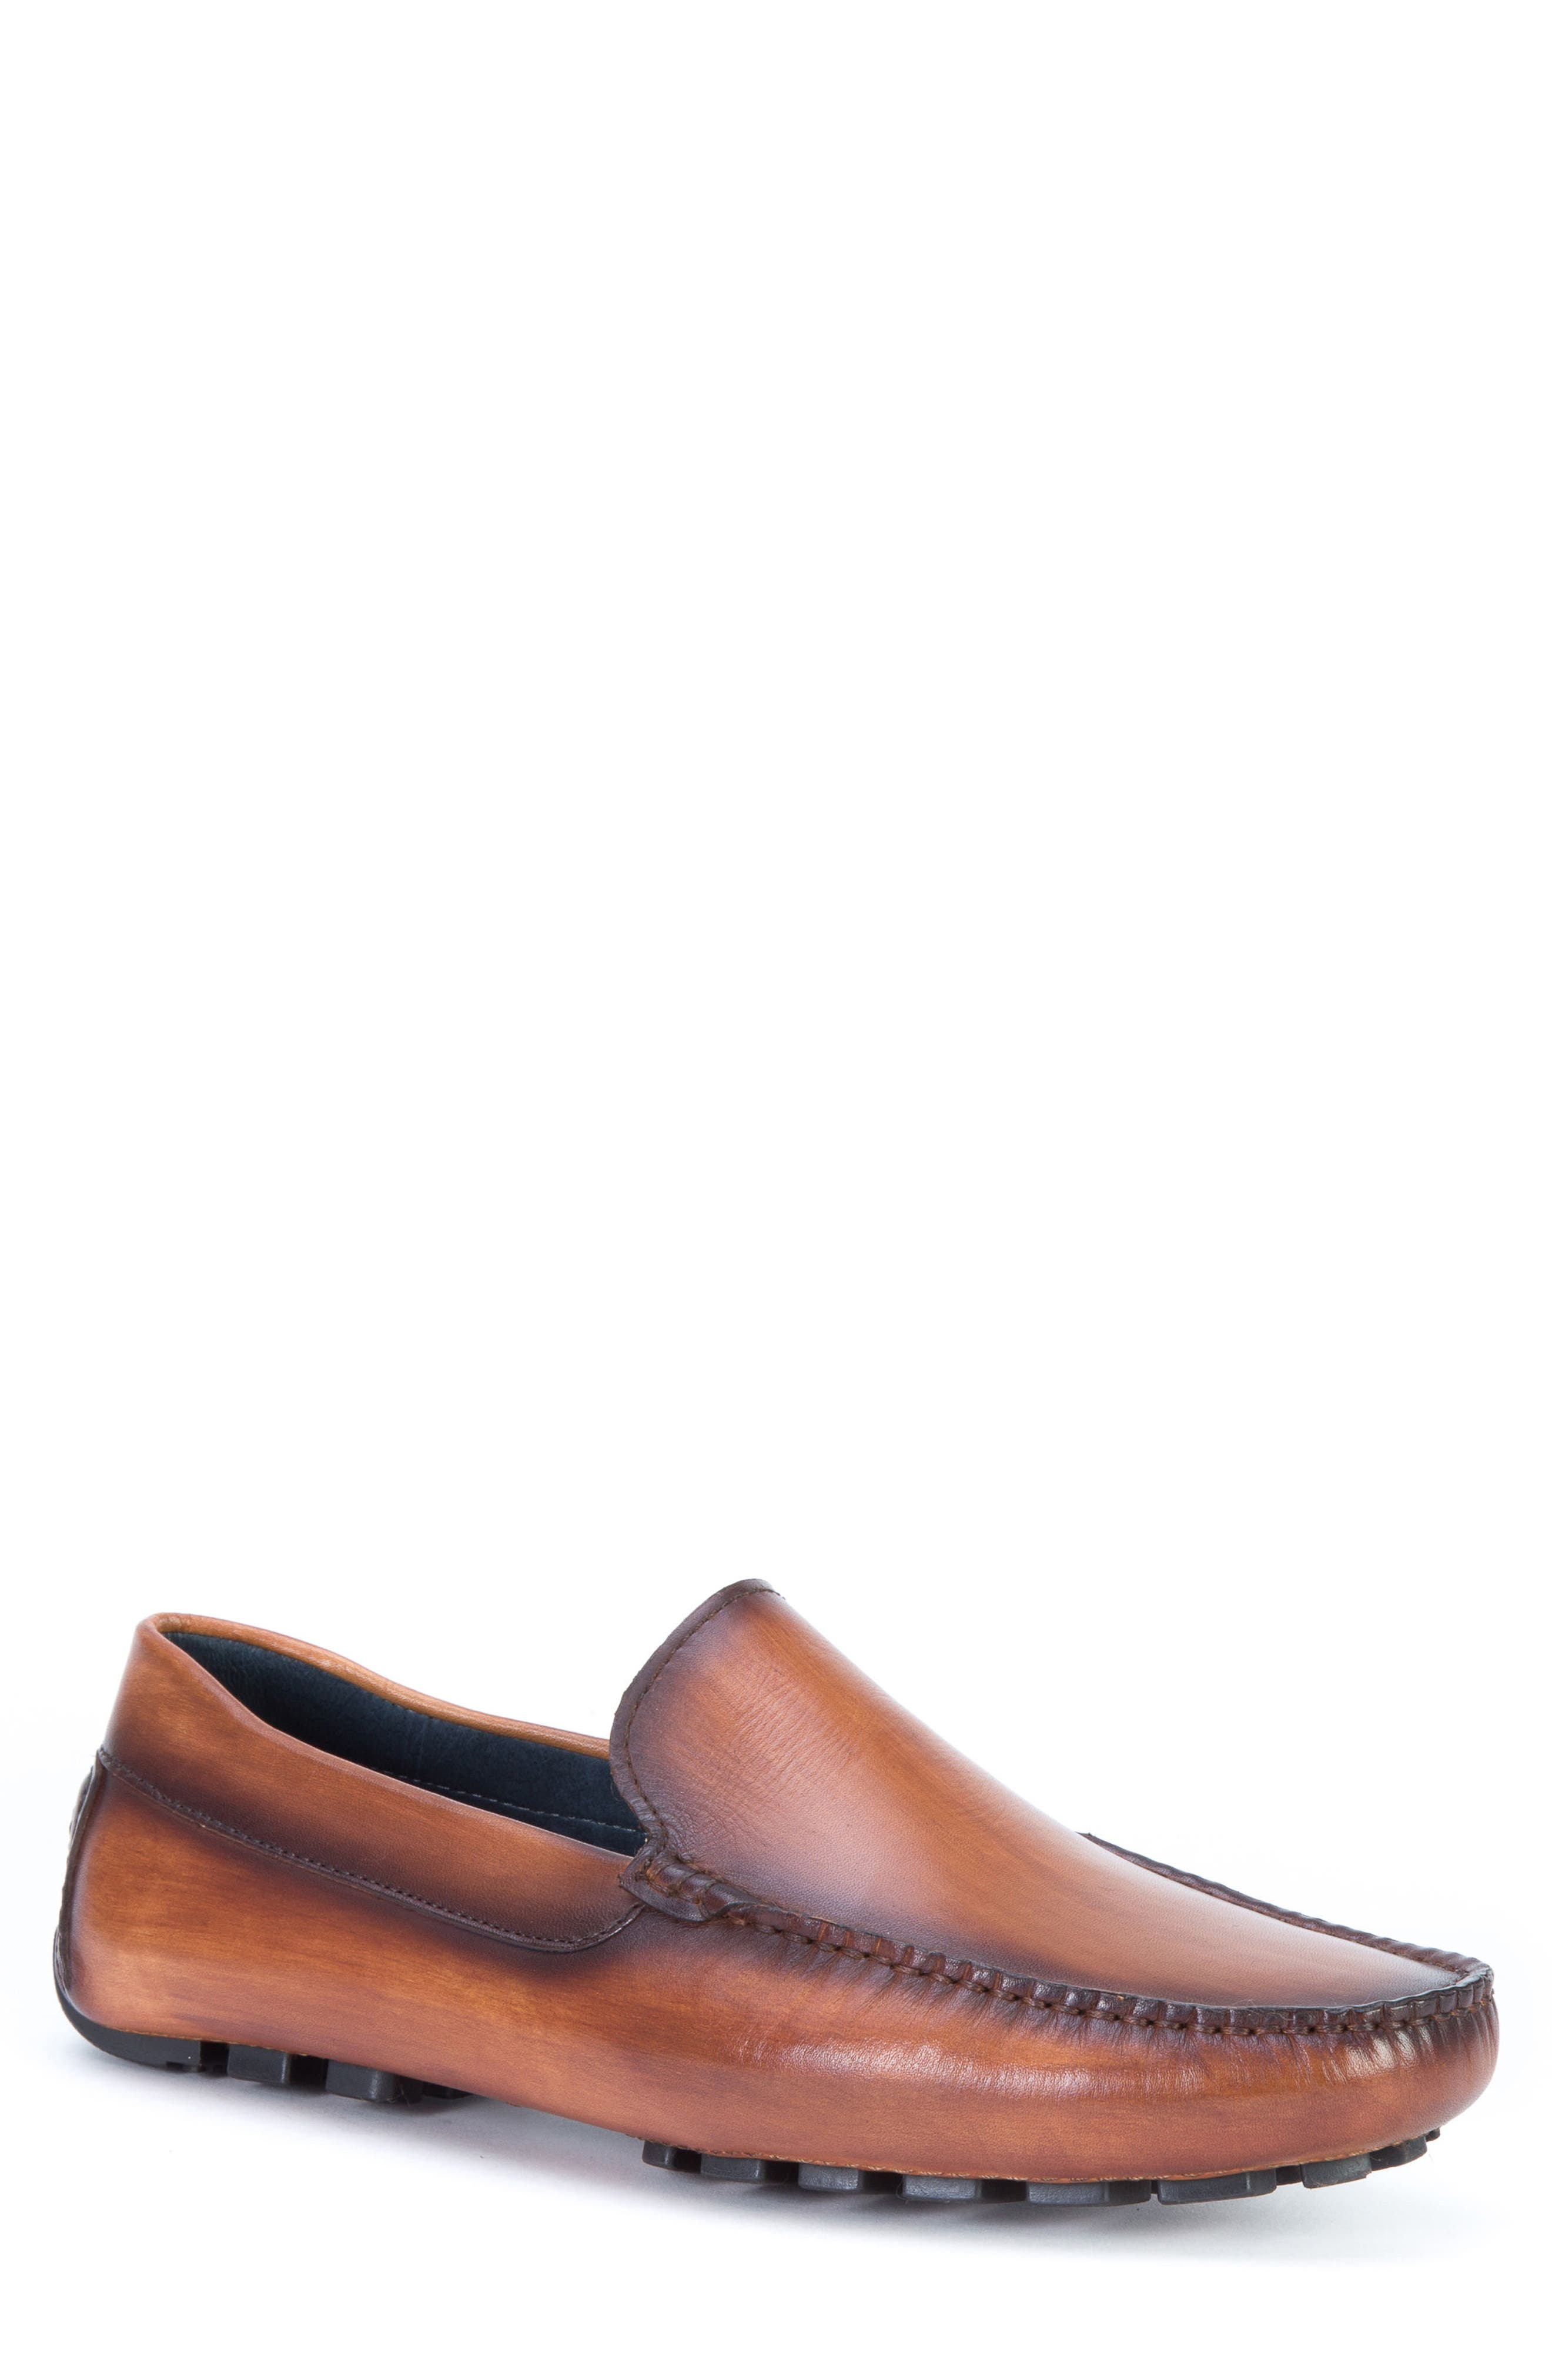 Matisse Driving Moccasin,                         Main,                         color, Cognac Leather